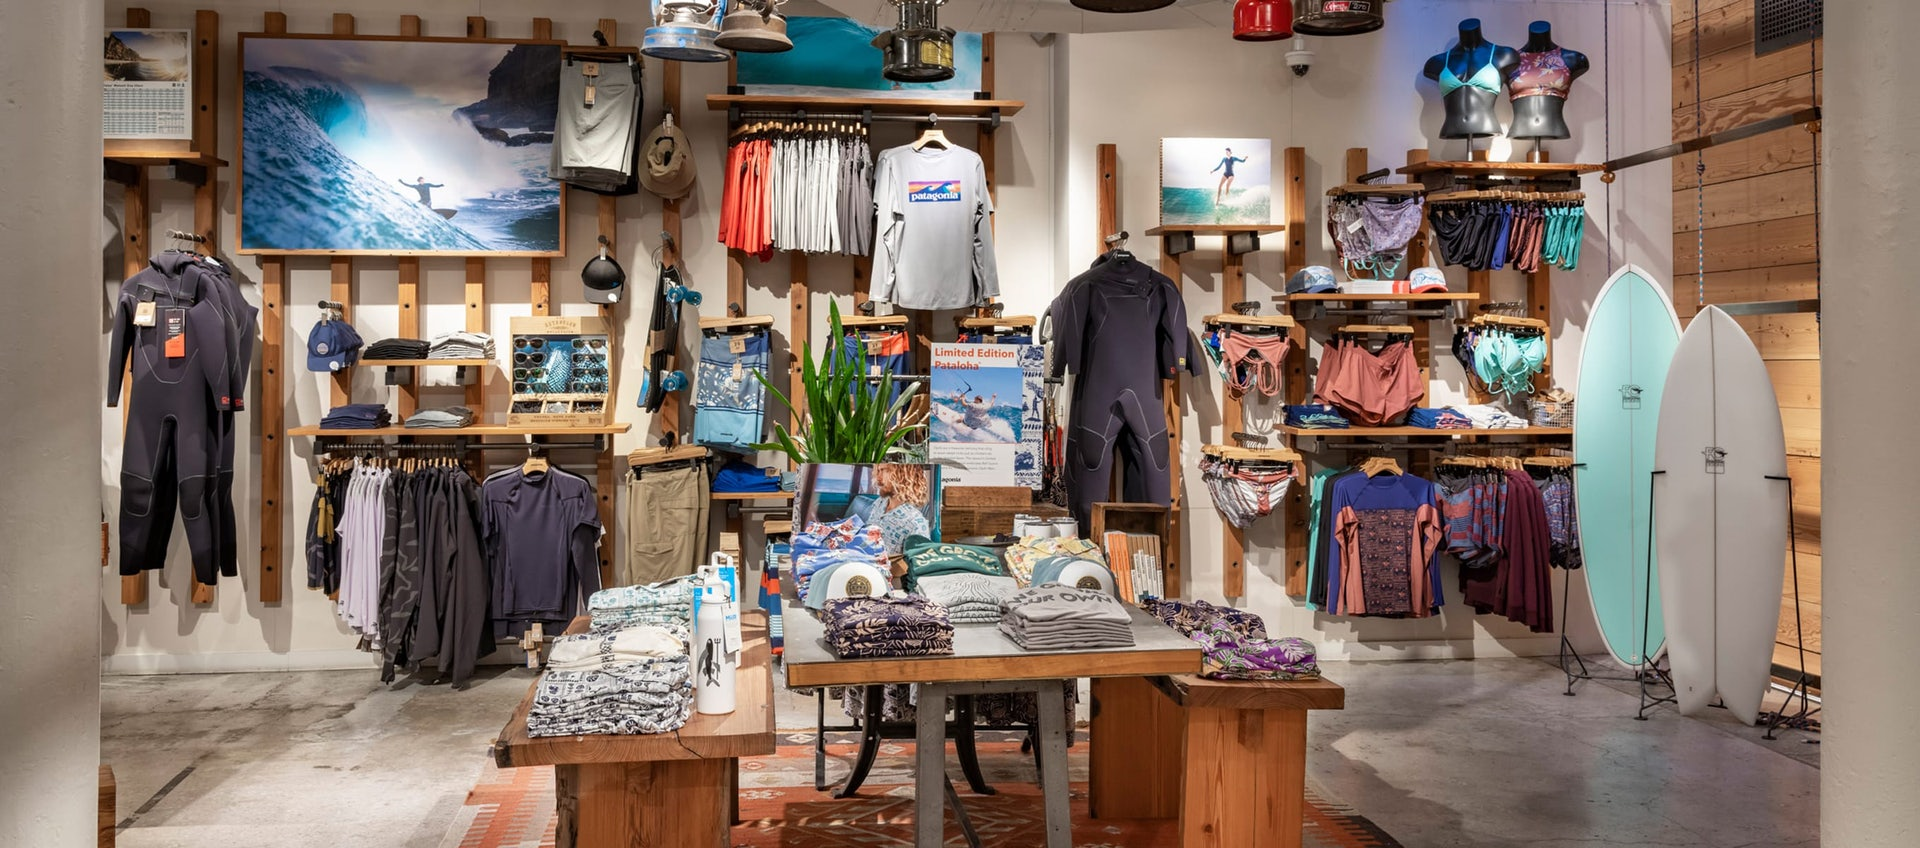 Patagonia shop in Soho NYC